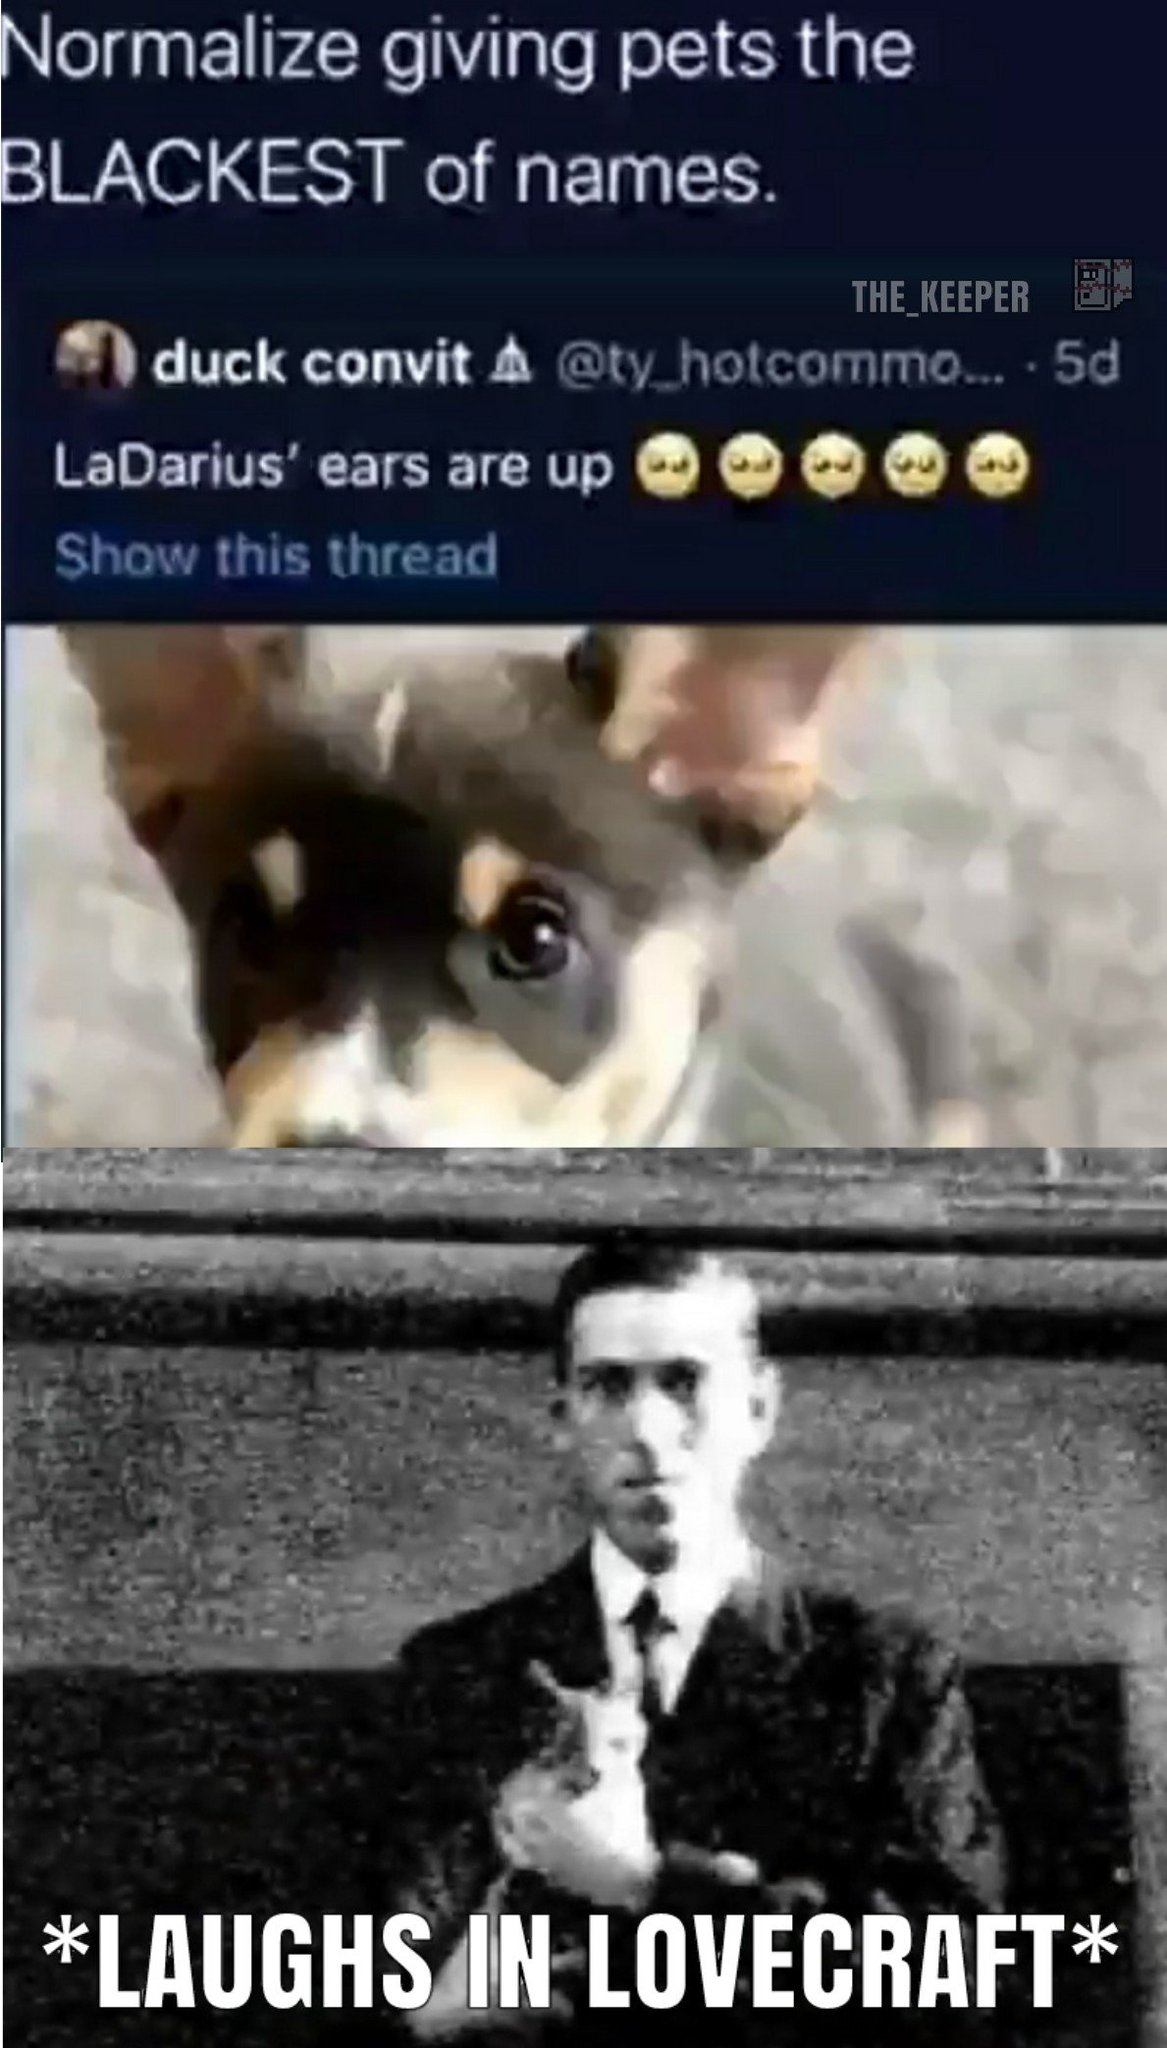 For those of you who don't understand, H.P. Lovecraft infamously gave his cat the loving name of... well...I'll let the comments tell you - meme